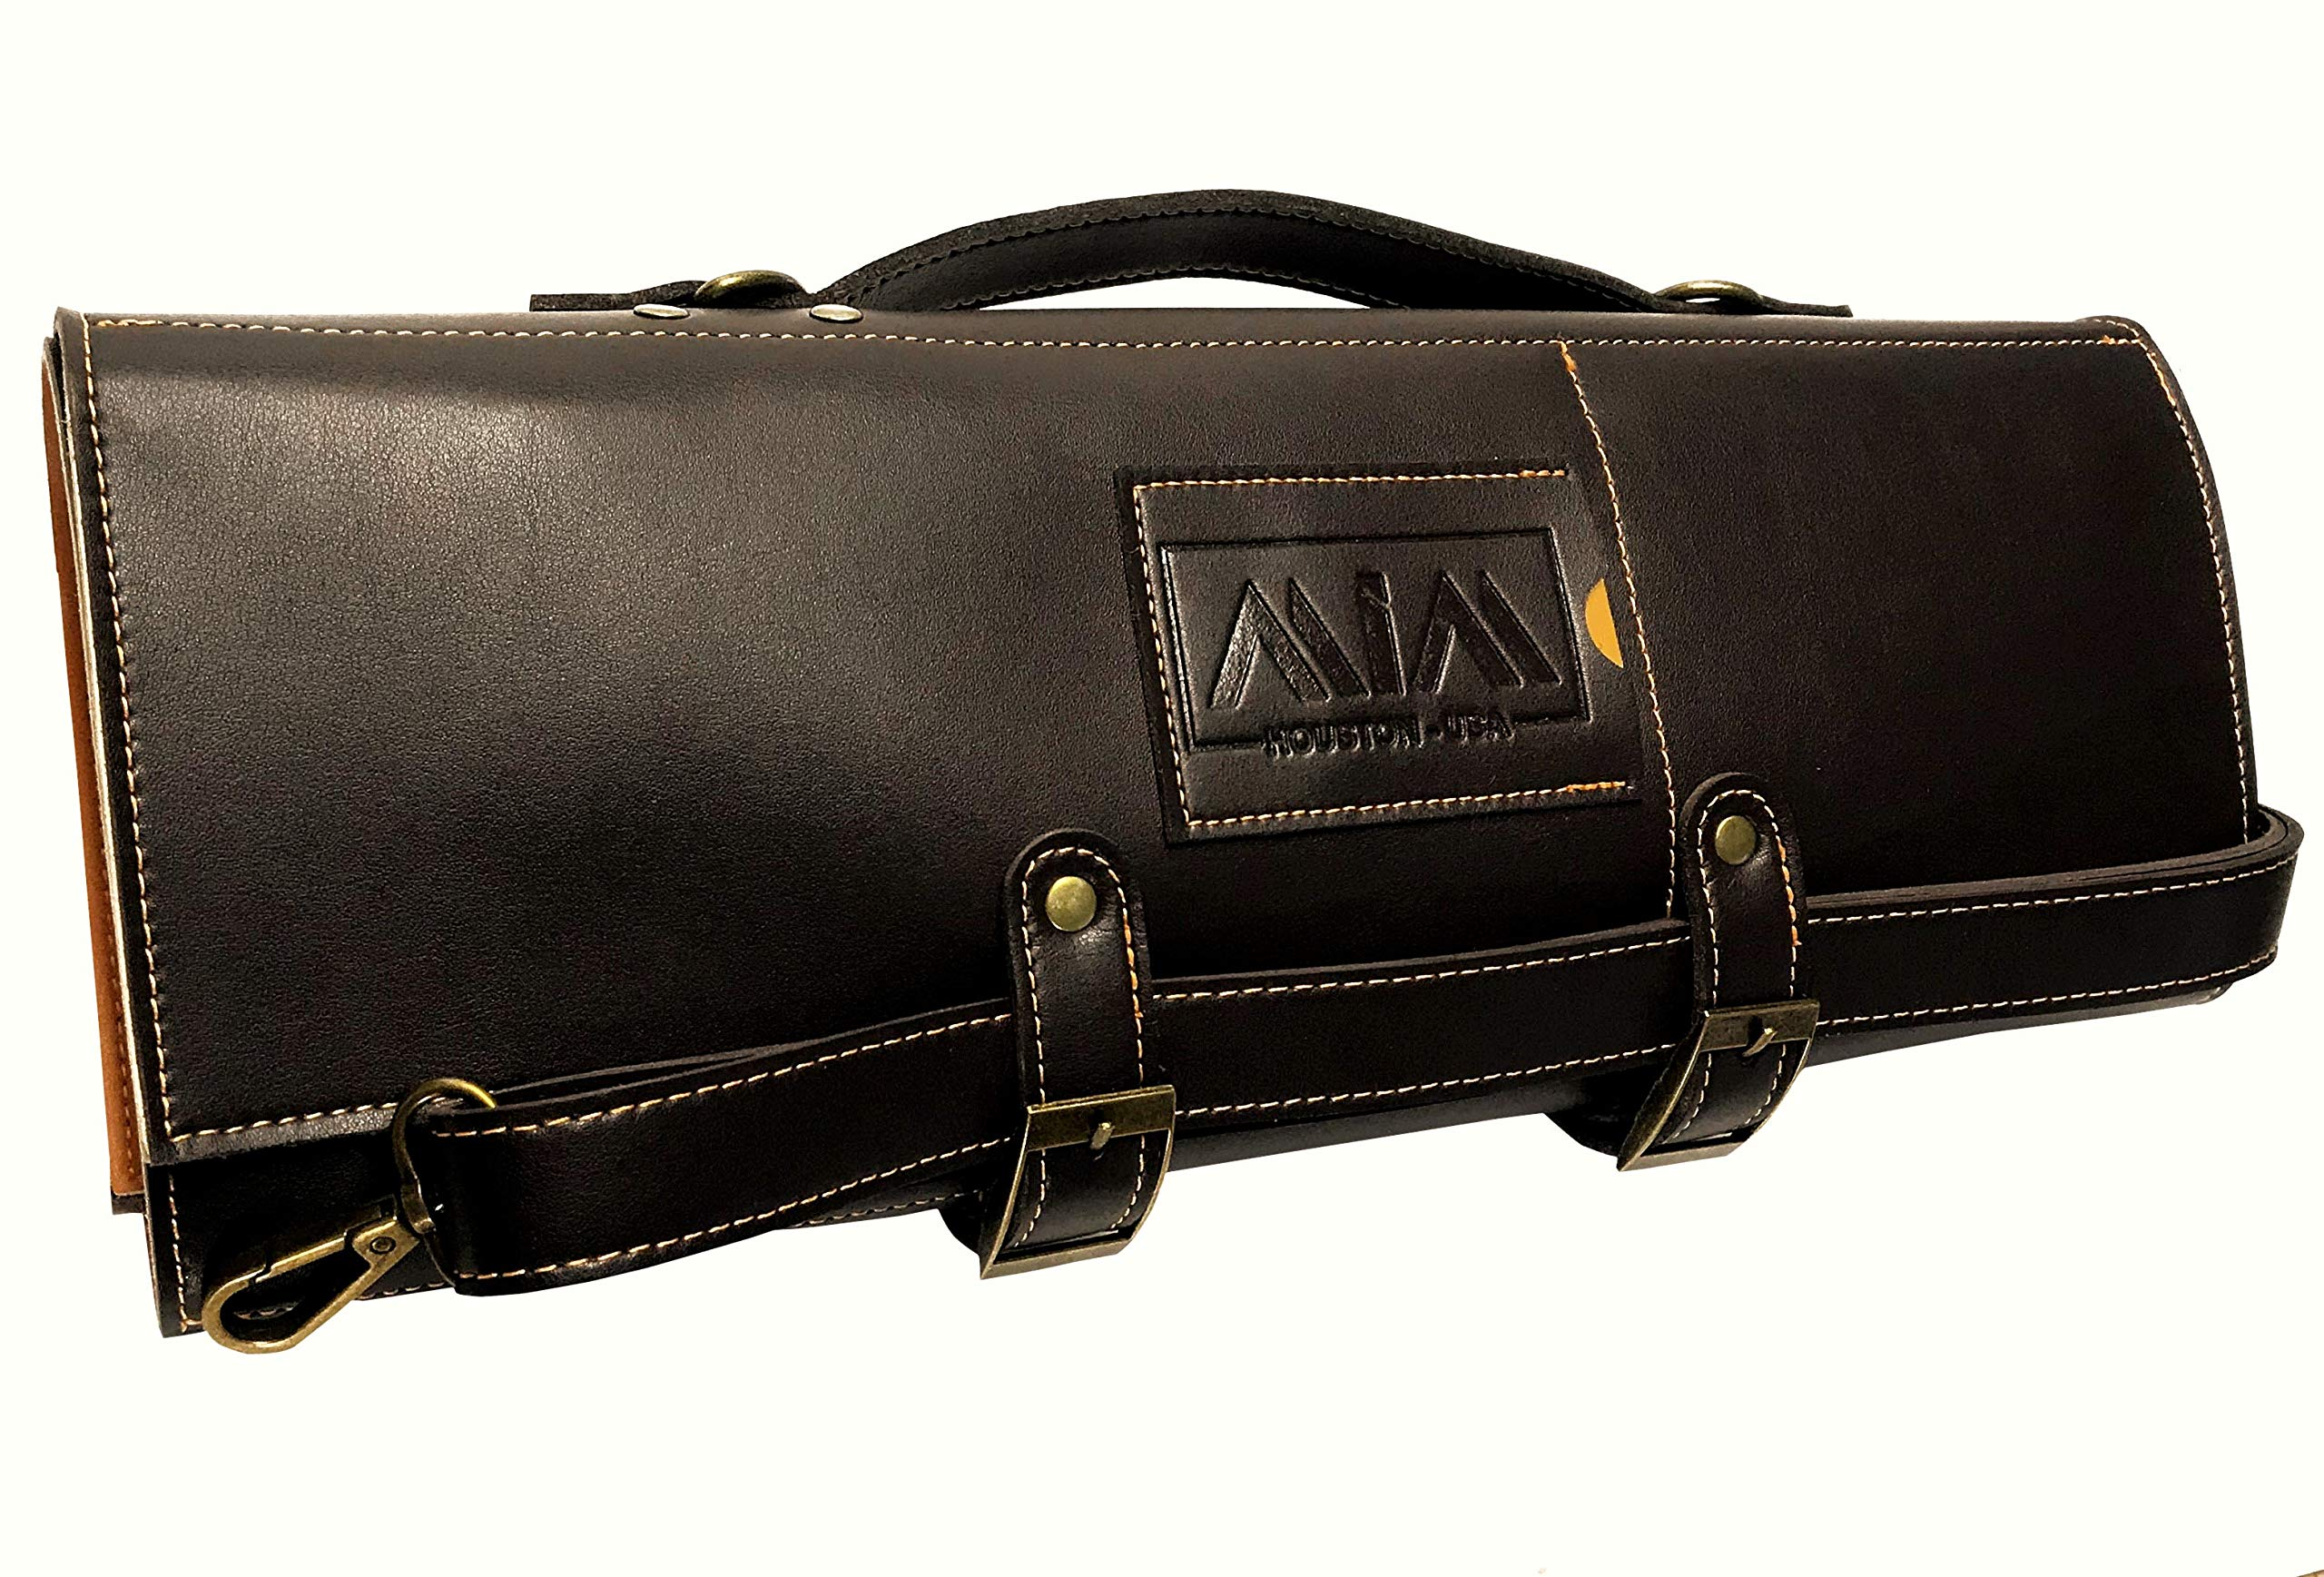 MiM Houston Chef Knife Bag | Large Chef Knife Roll Bag | Fine Leather | W/Business Card Slot | Dark Oak by MiM Houston (Image #2)